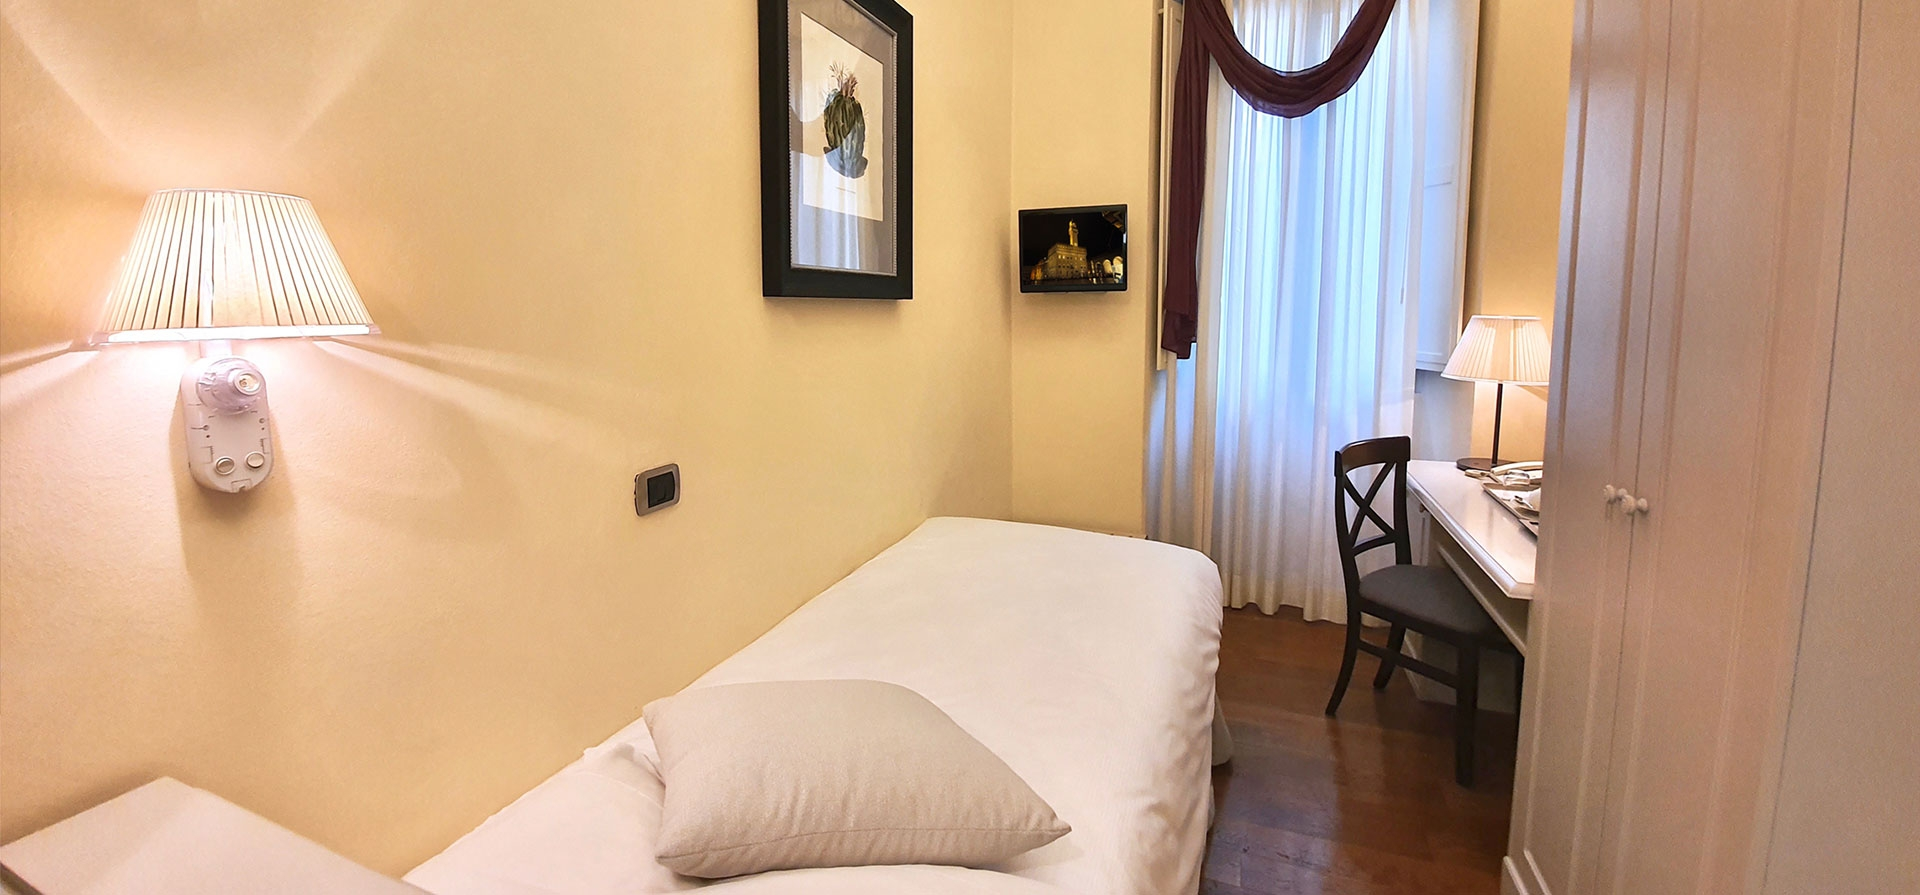 Single Room BnB - La Signoria di Firenze